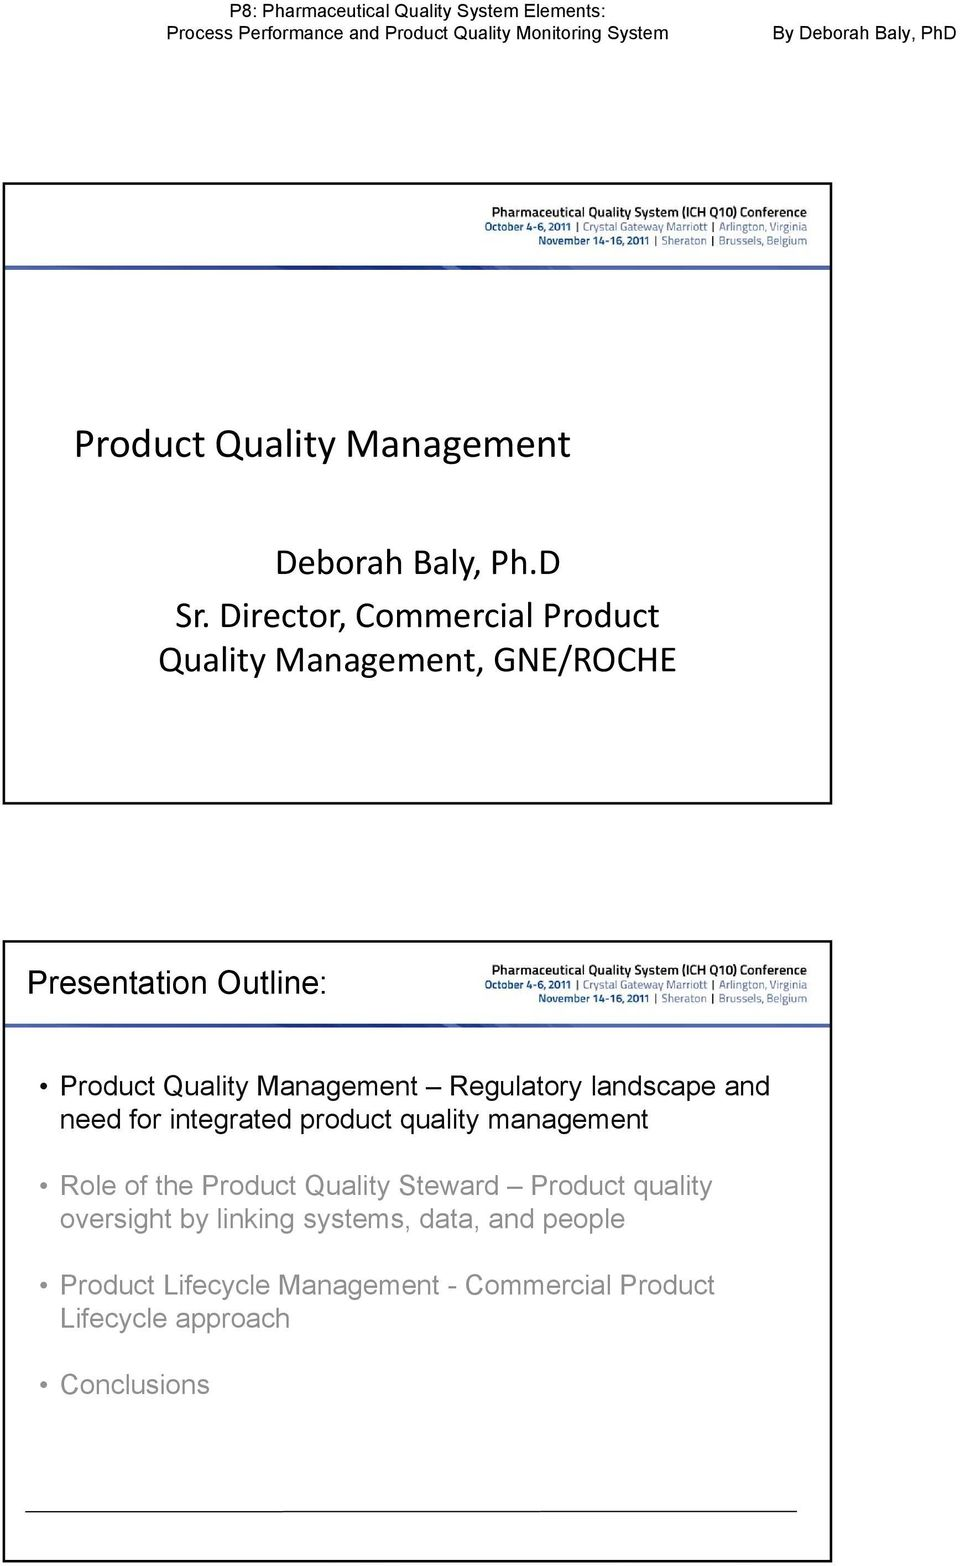 Product Quality Management - PDF